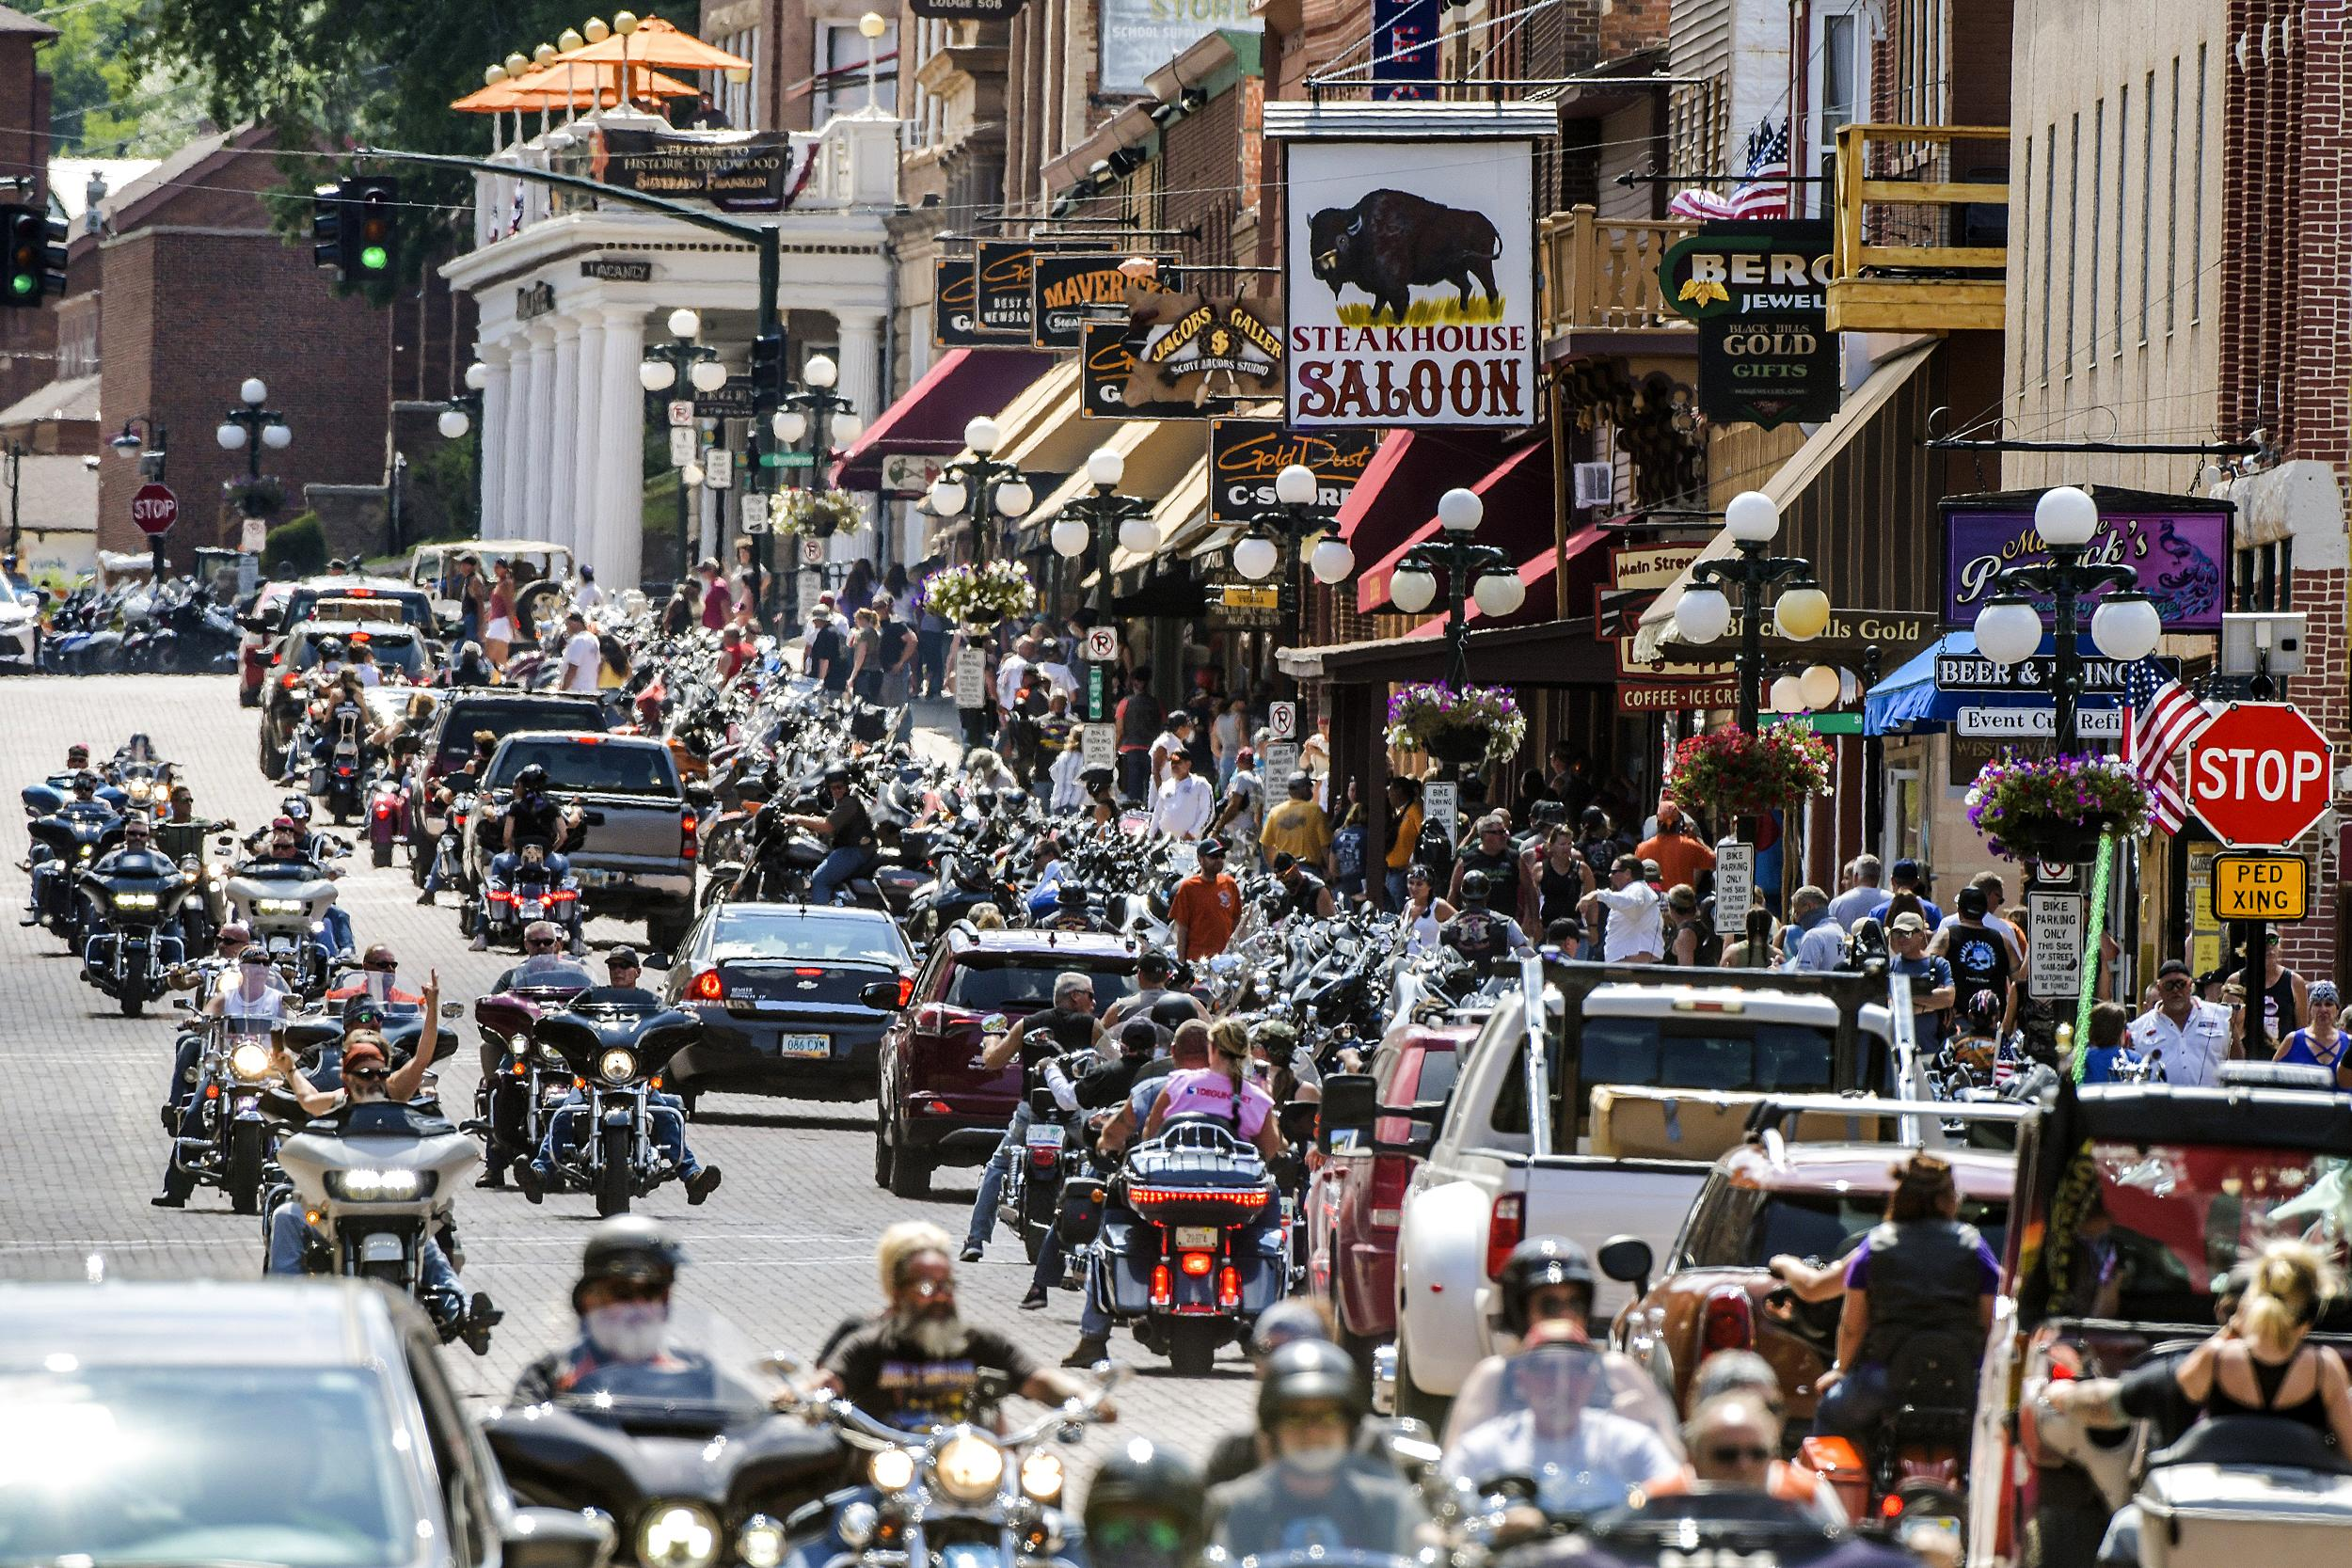 Sturgis rally linked to 15 Minnesota COVID-19 cases, including 1 hospitalization